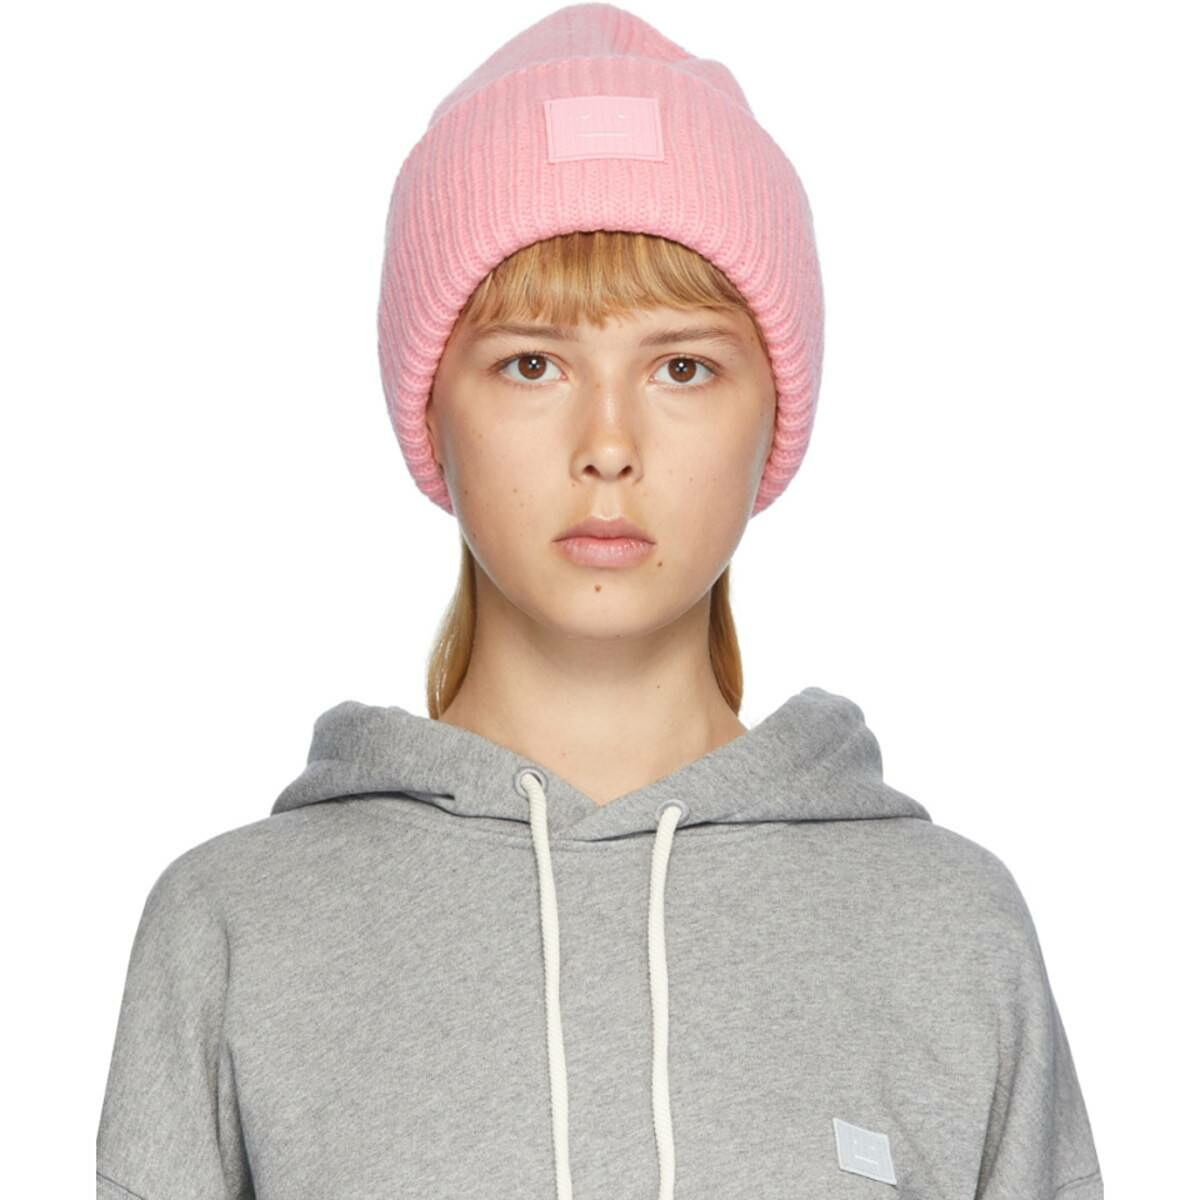 Acne Studios Pink Rib Knit Patch Beanie Ssense USA WOMEN Women ACCESSORIES Womens HATS